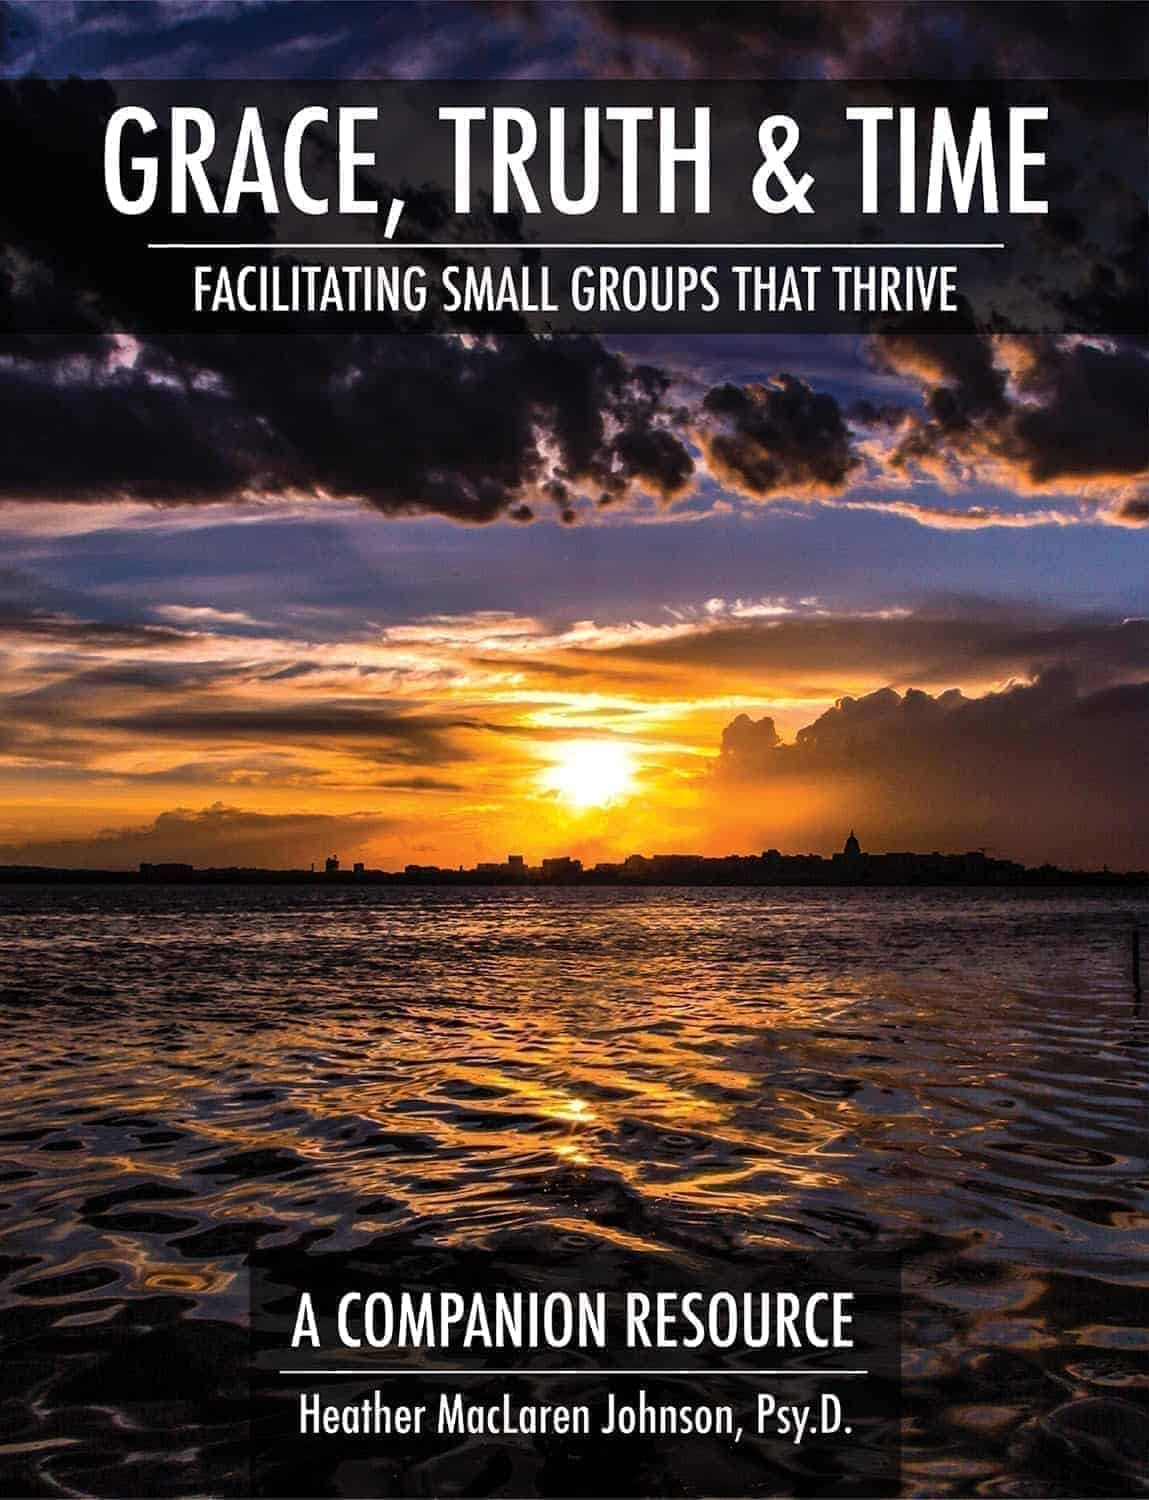 Grace, Truth & Time: Facilitating Small Groups That Thrive